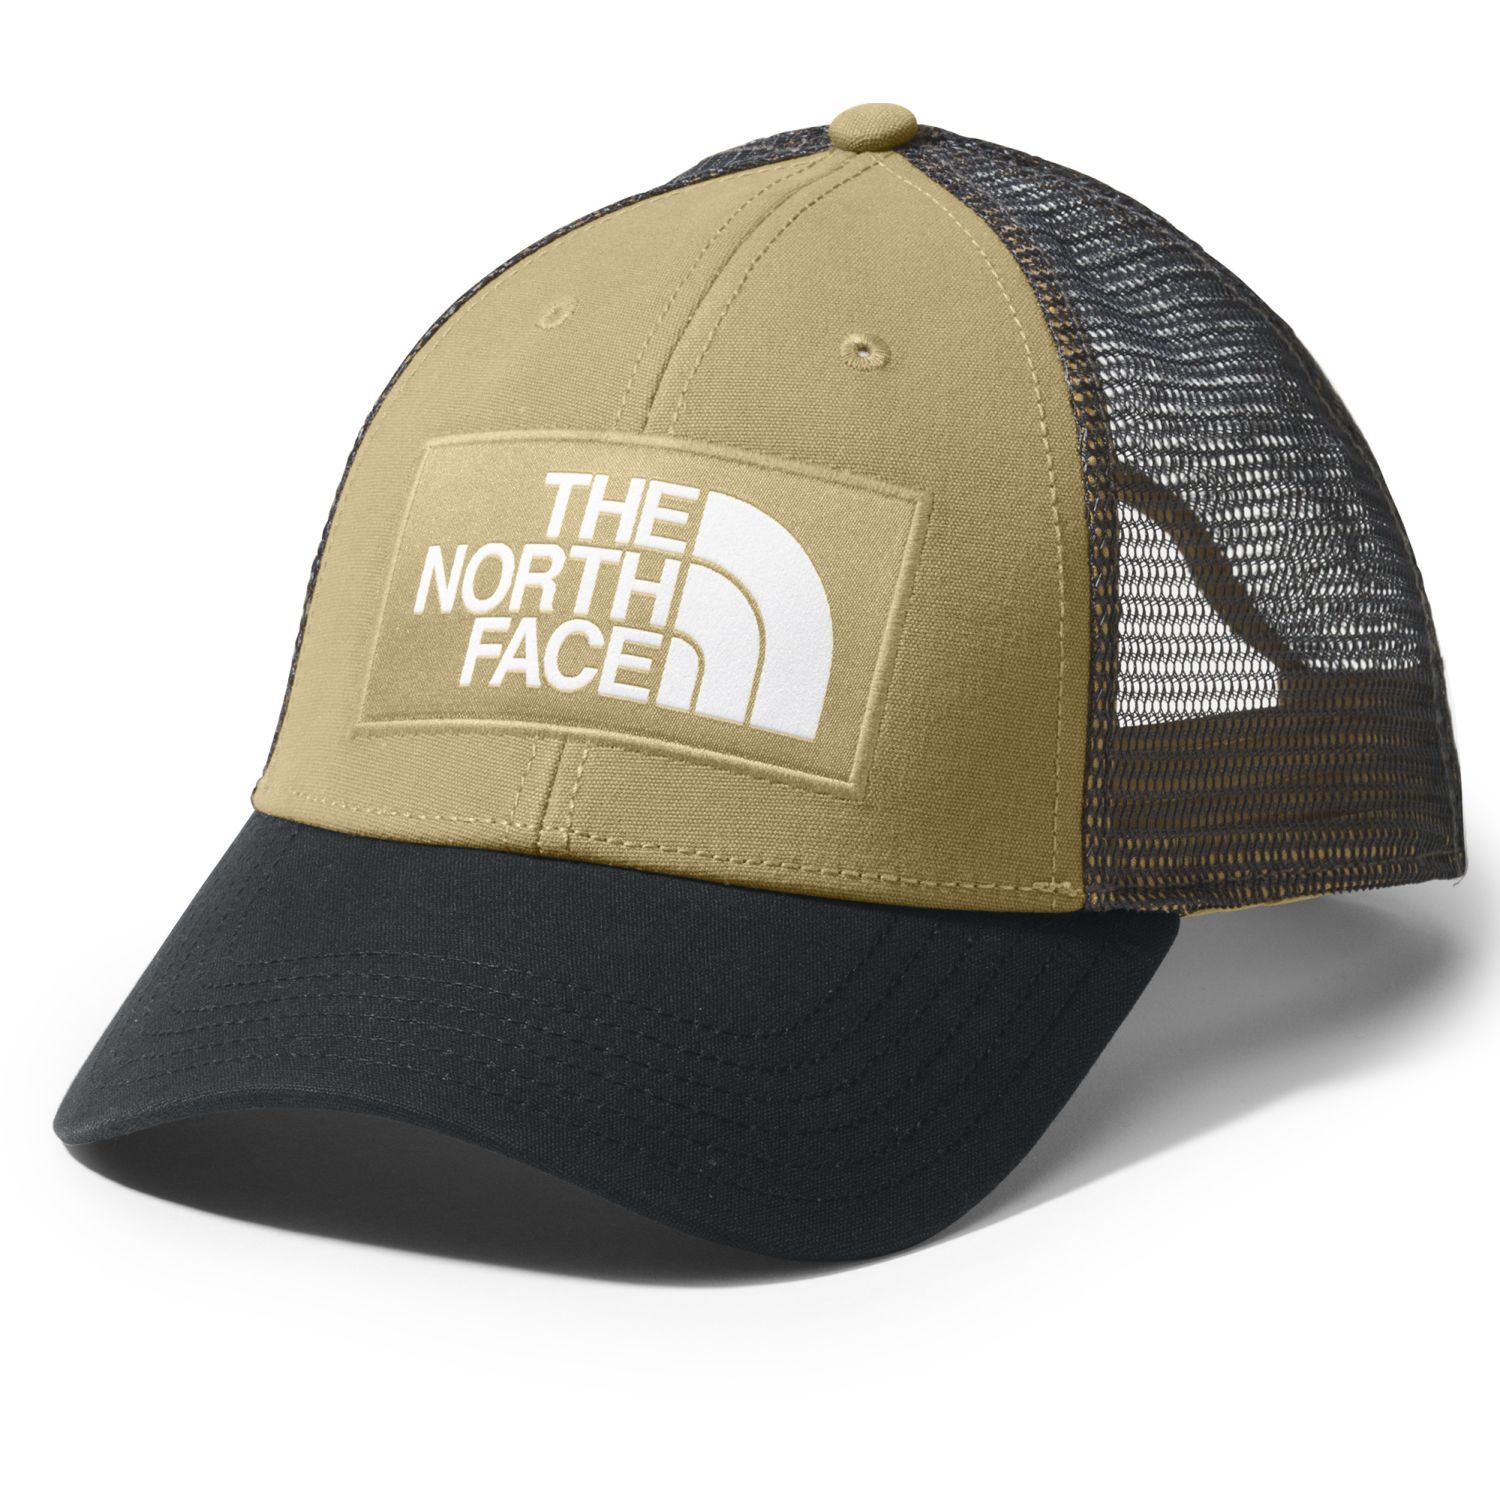 The North Face Mudder Trucker Hat Marron Gorras de béisbol